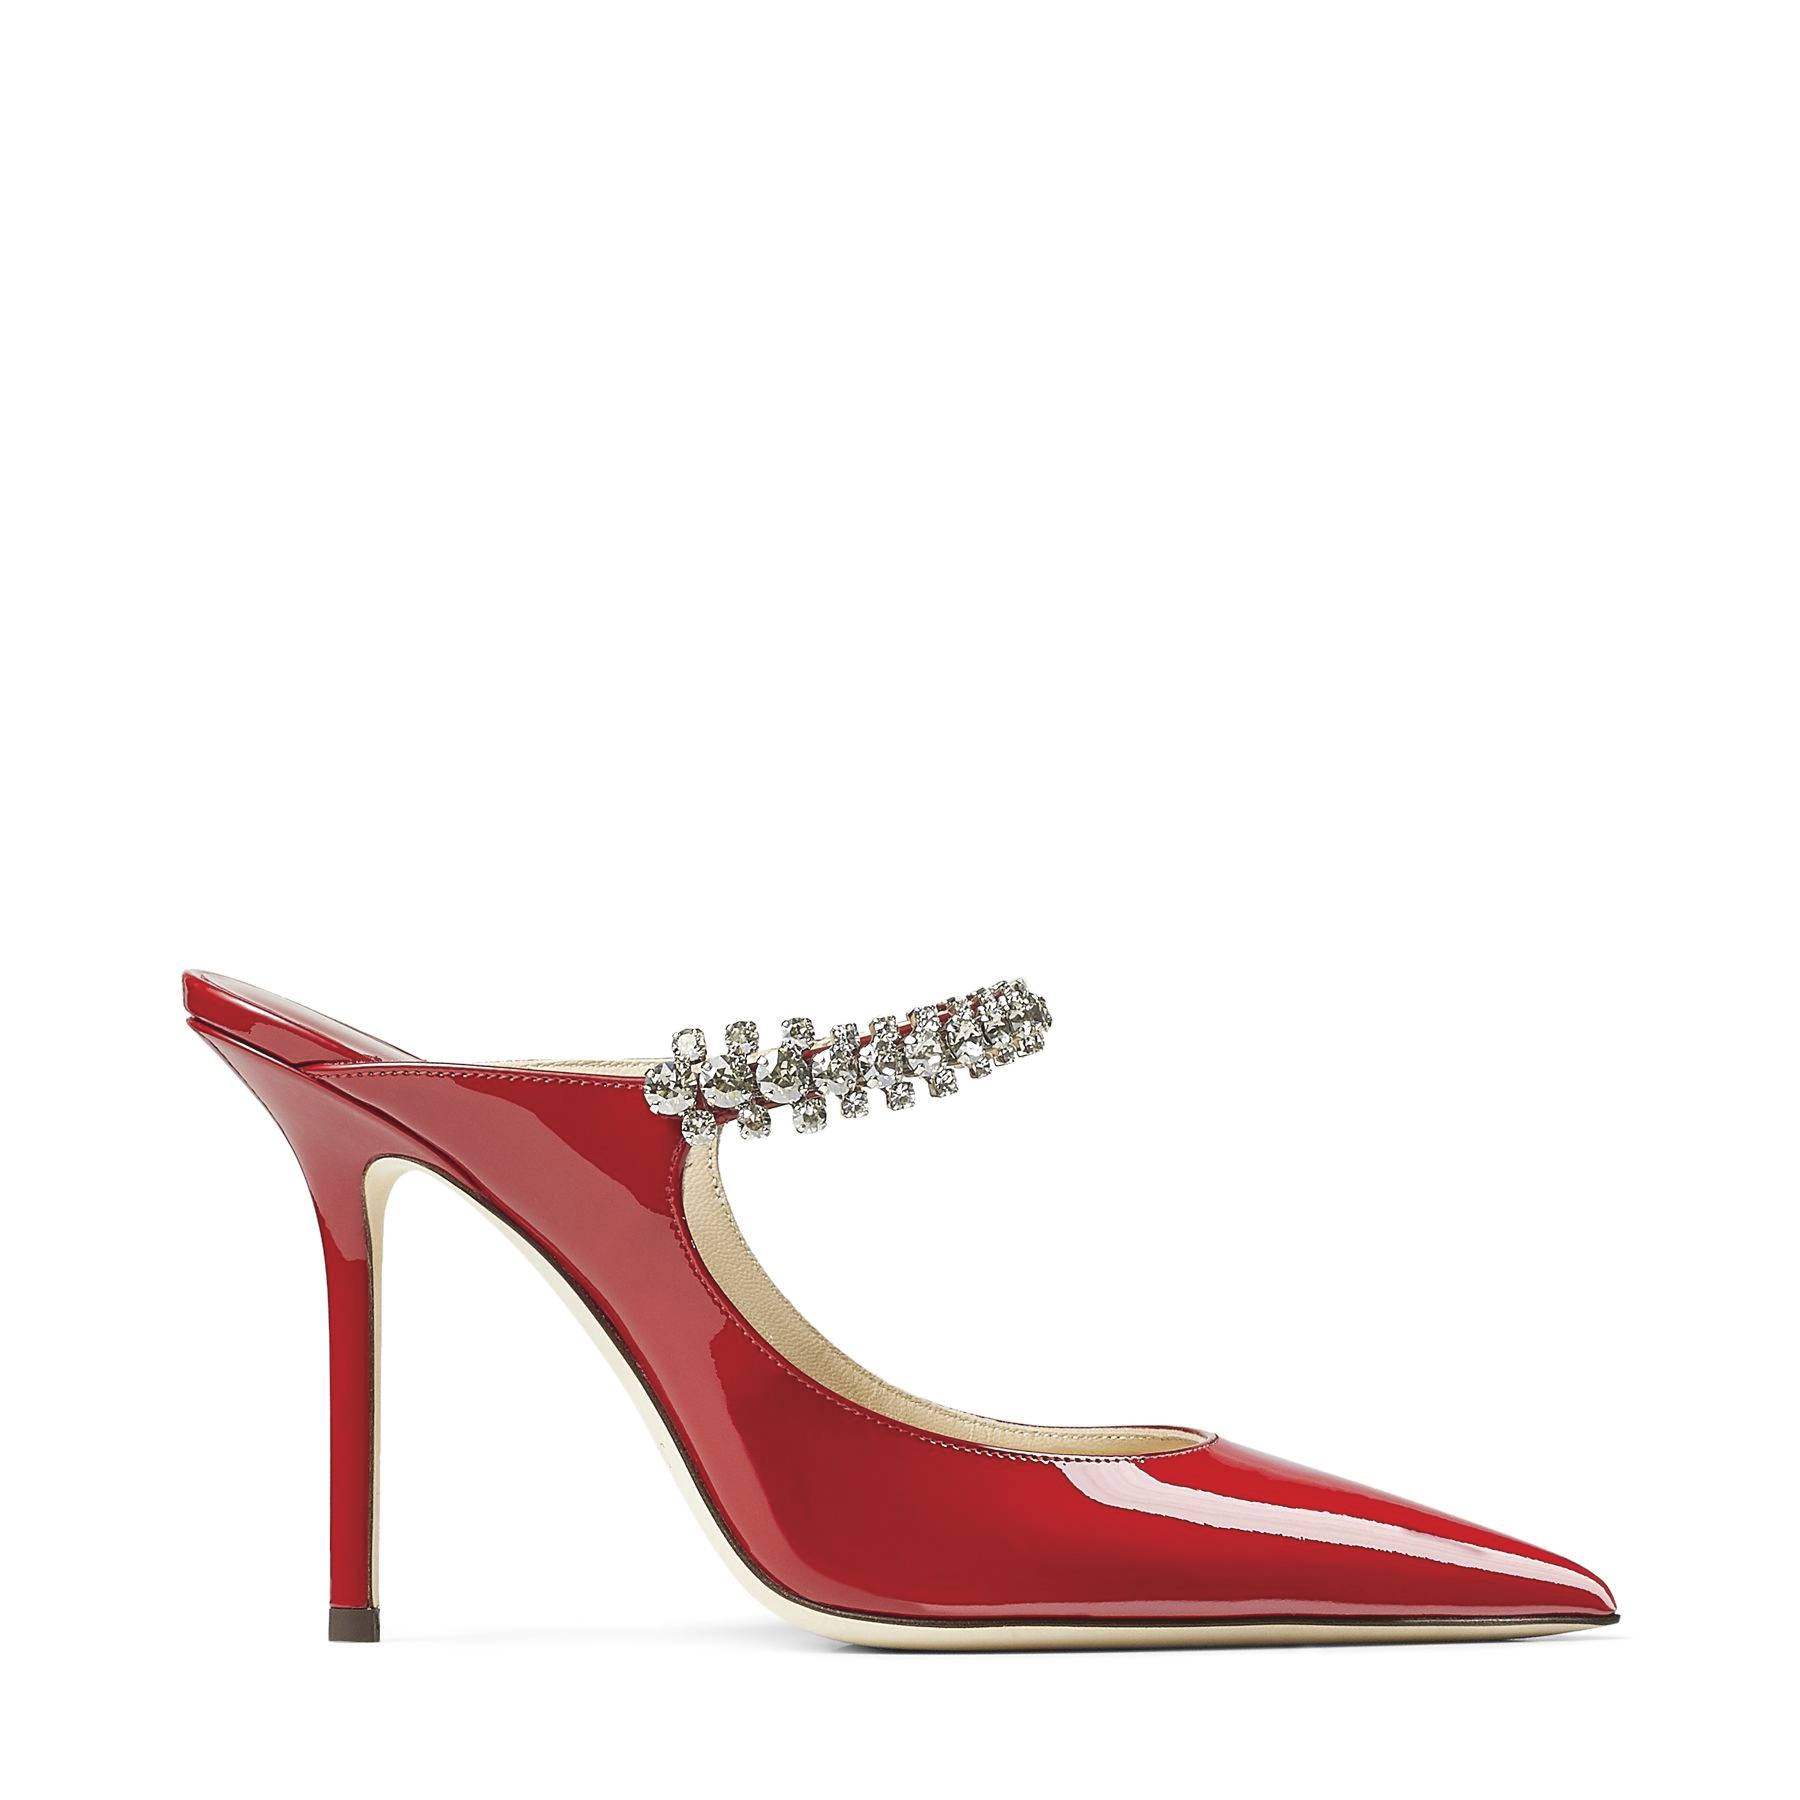 Jimmy Choo's Bing 100 patent pumps